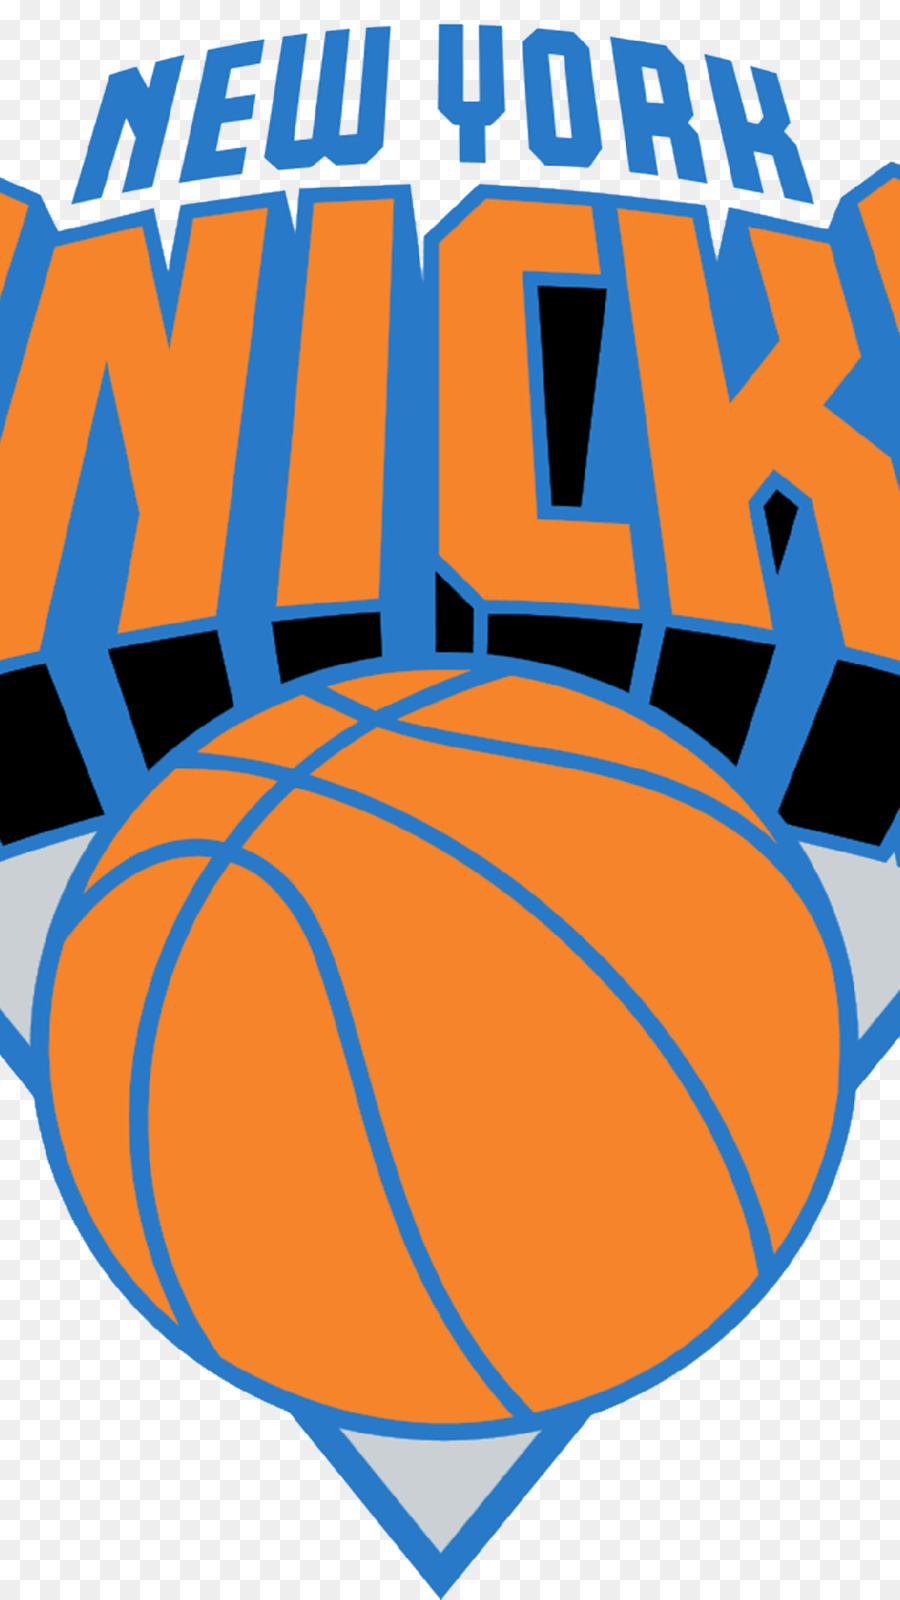 New york knicks clipart png free New York City clipart - Basketball, Orange, Text ... png free